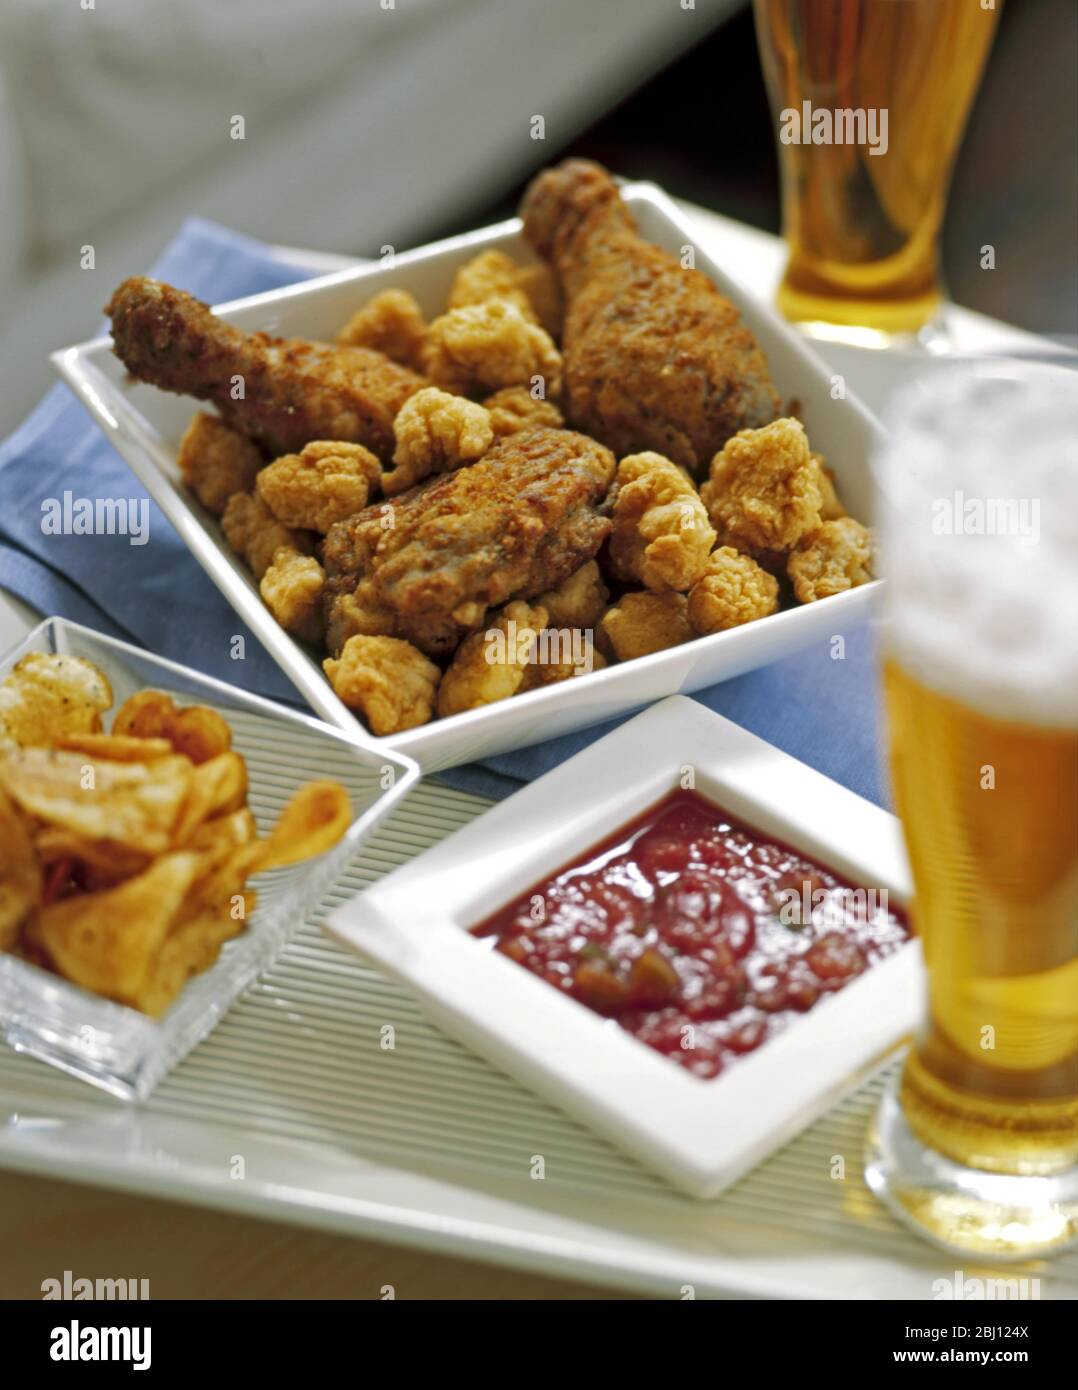 Casual Meal Of Fried Chicken Crisps Tomato Salsa And Beer Stock